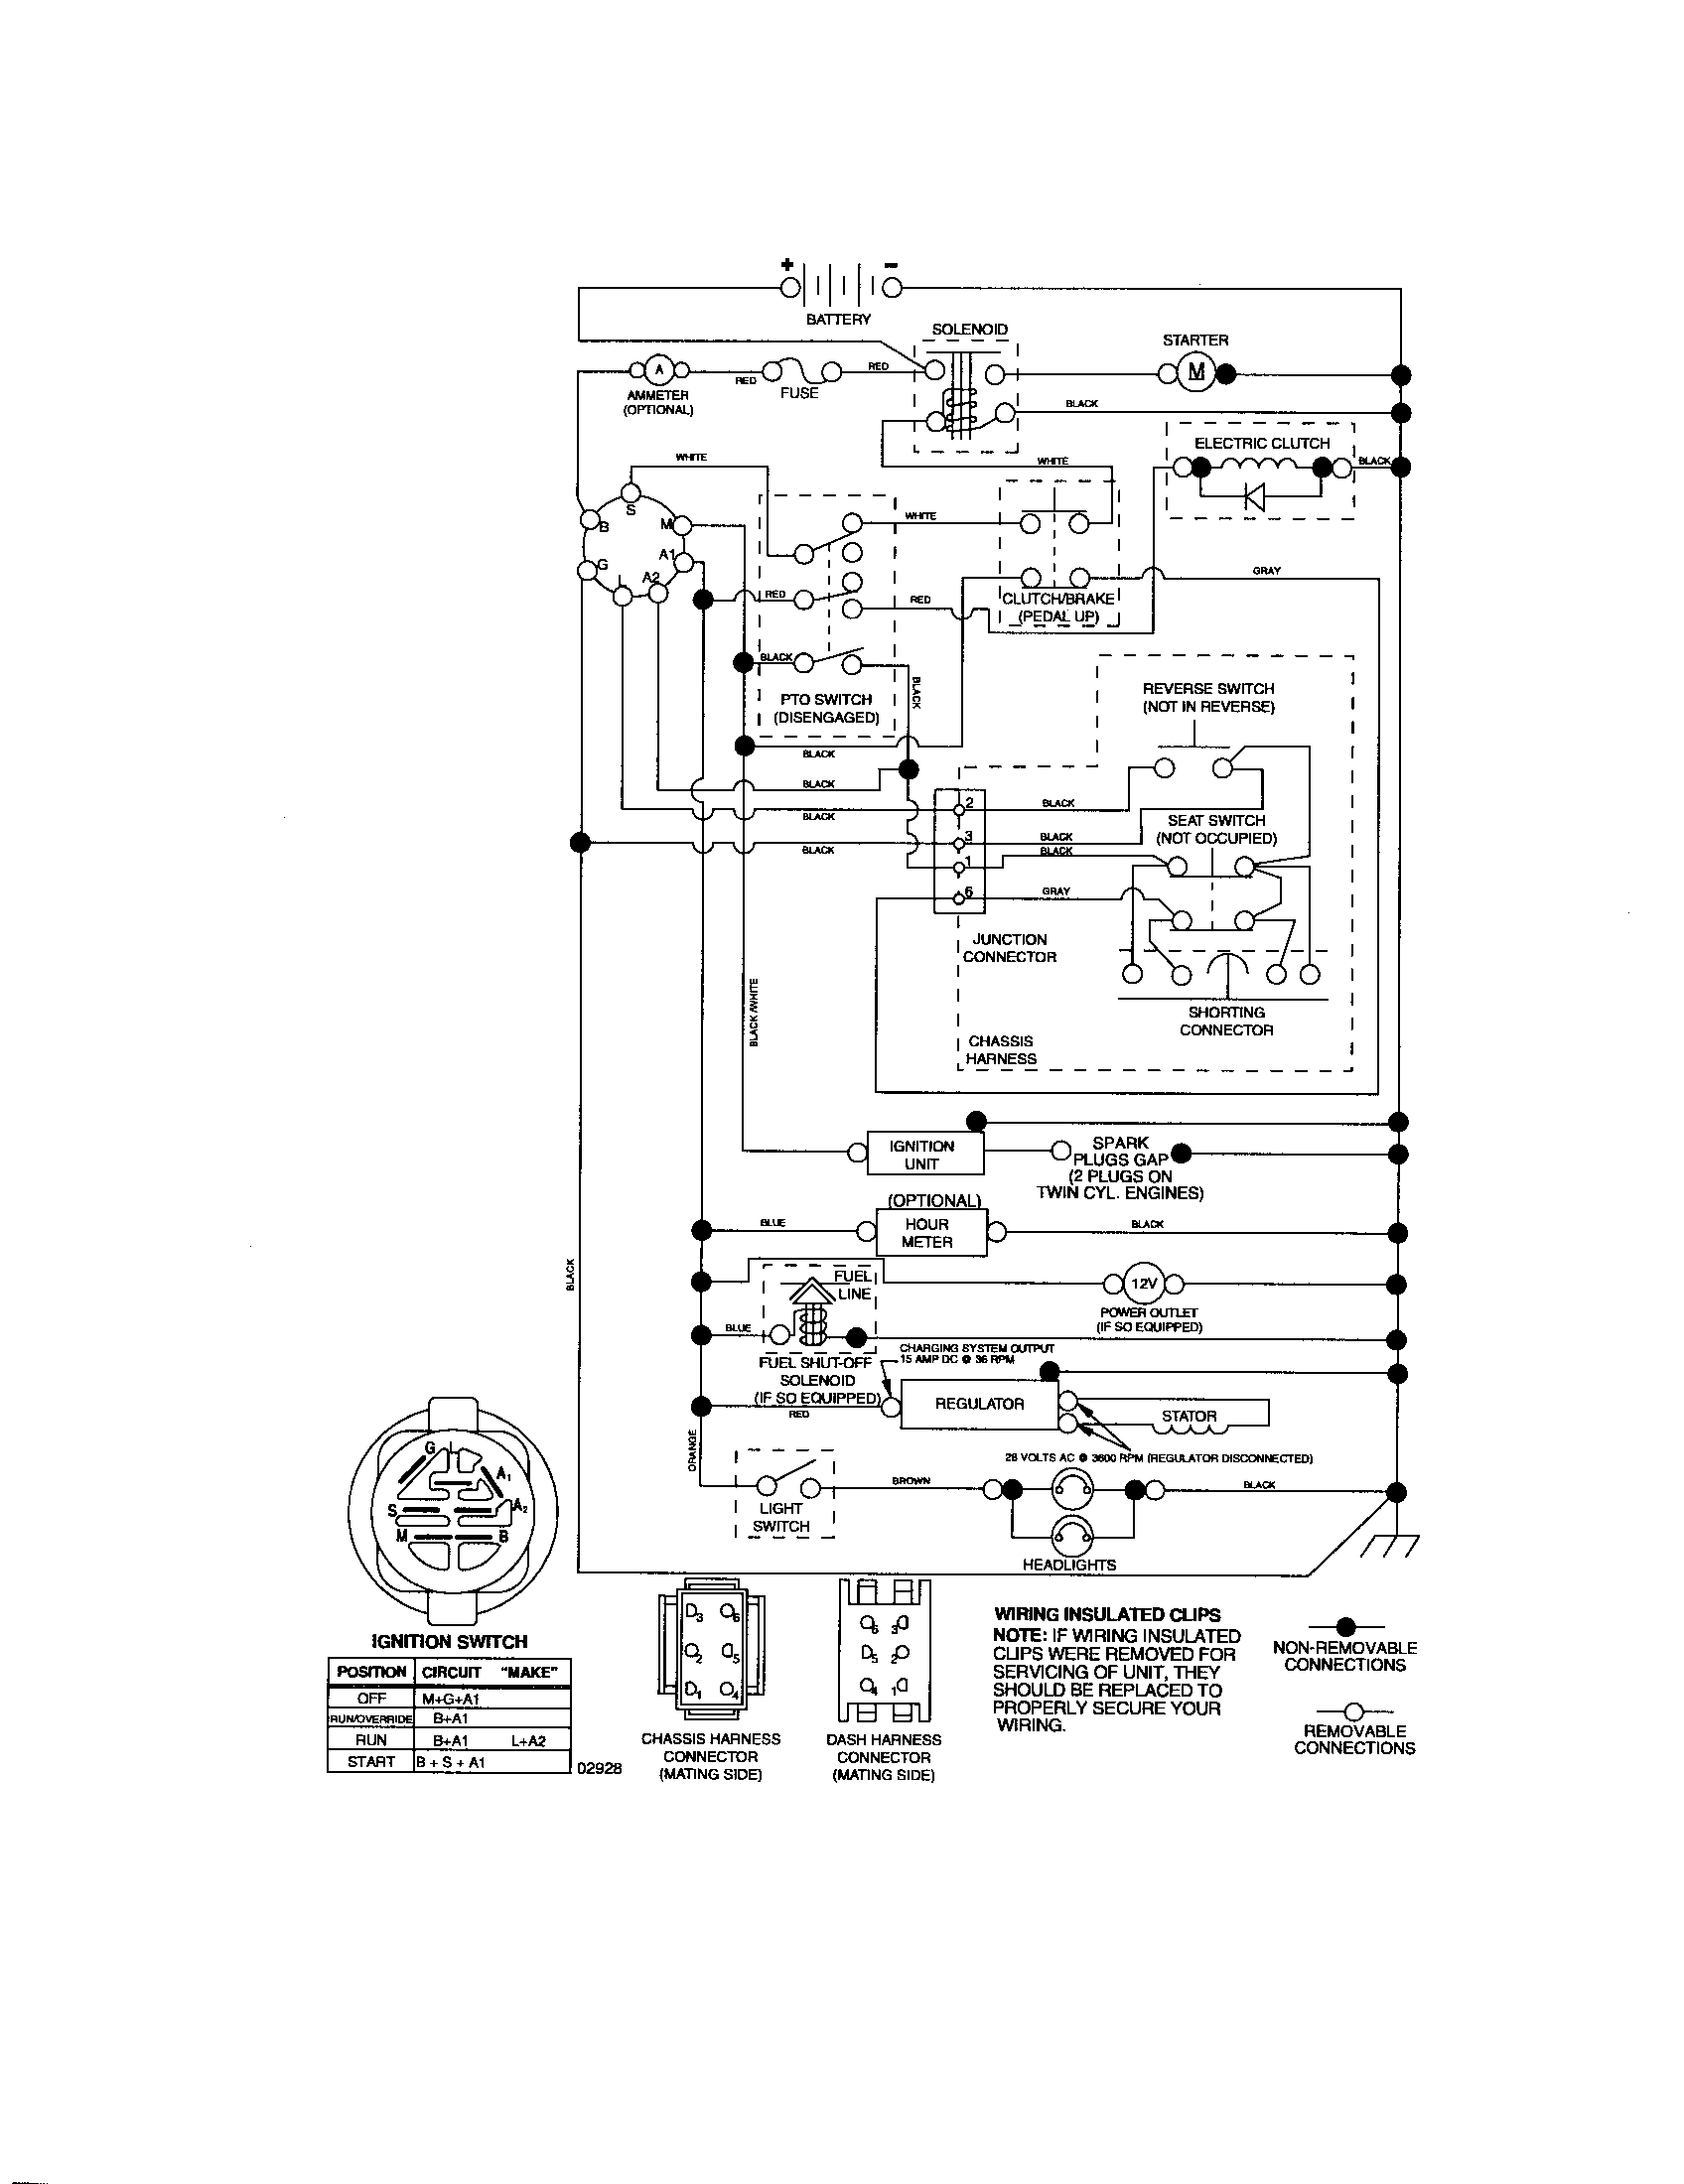 hight resolution of sears motor wiring diagram wiring diagram schematics dynamark 3 20 snowblower manuals craftsman model 917276630 lawn